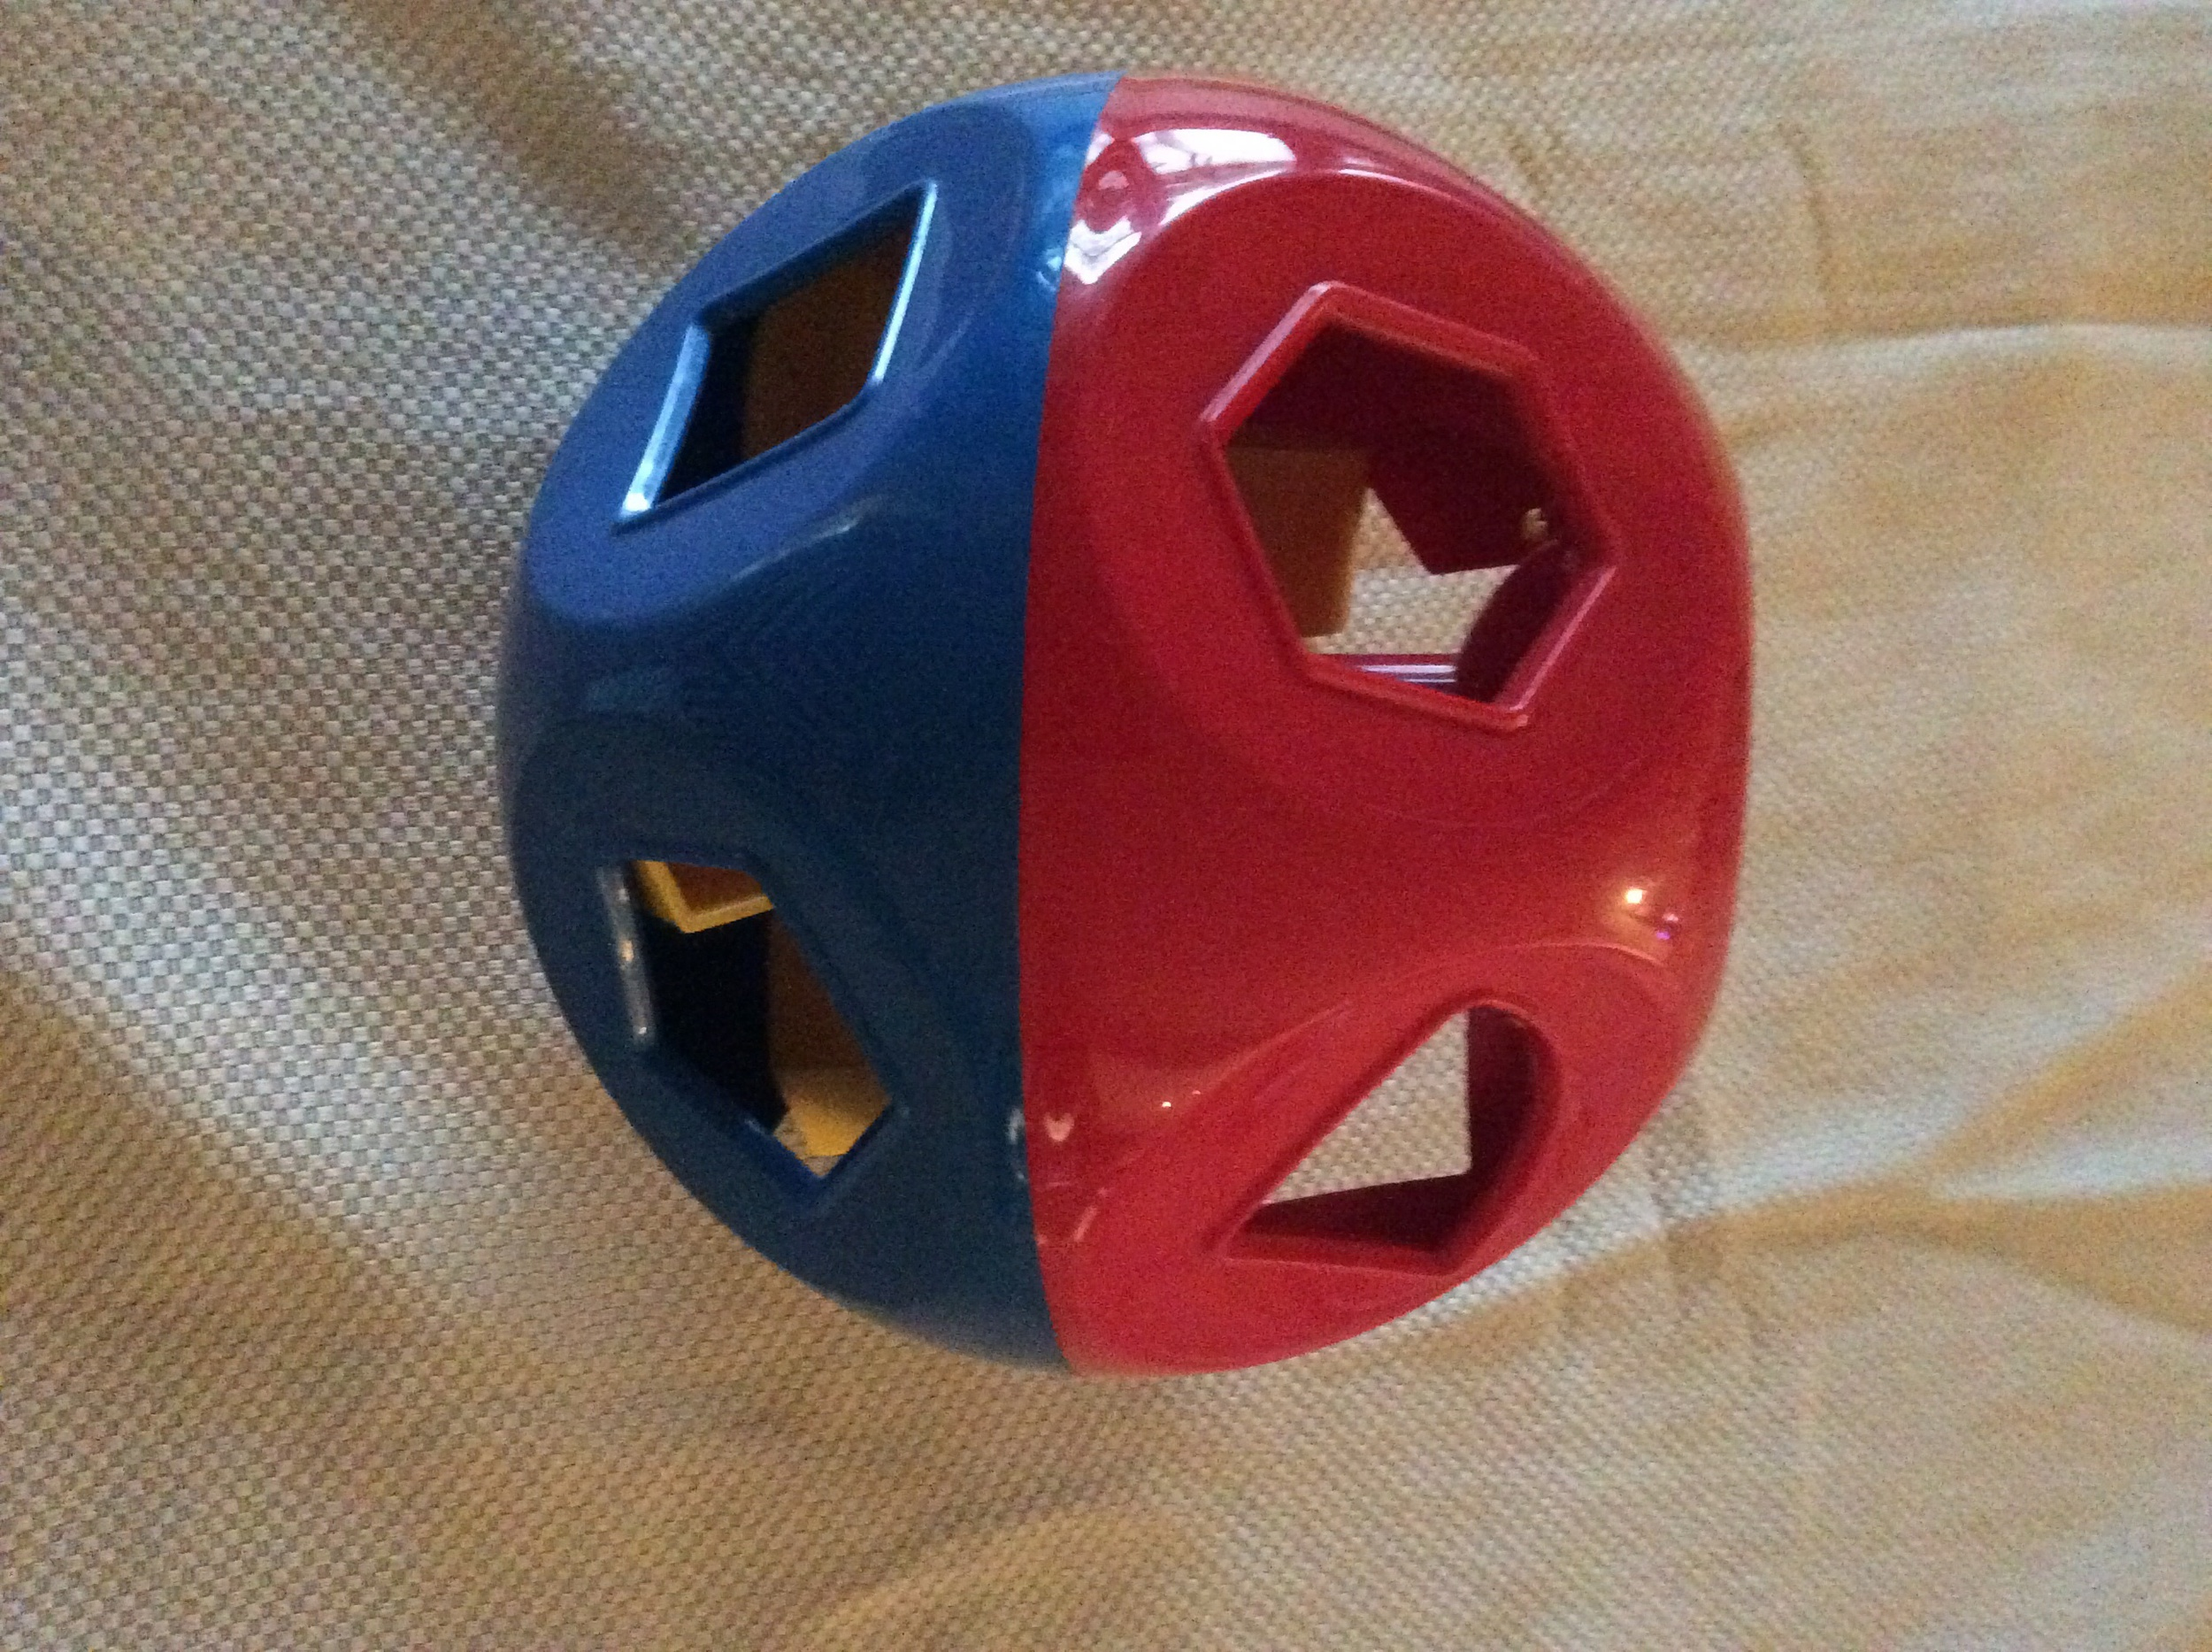 Shape-O - one of my kids toys found in the 'toy cupboard'.